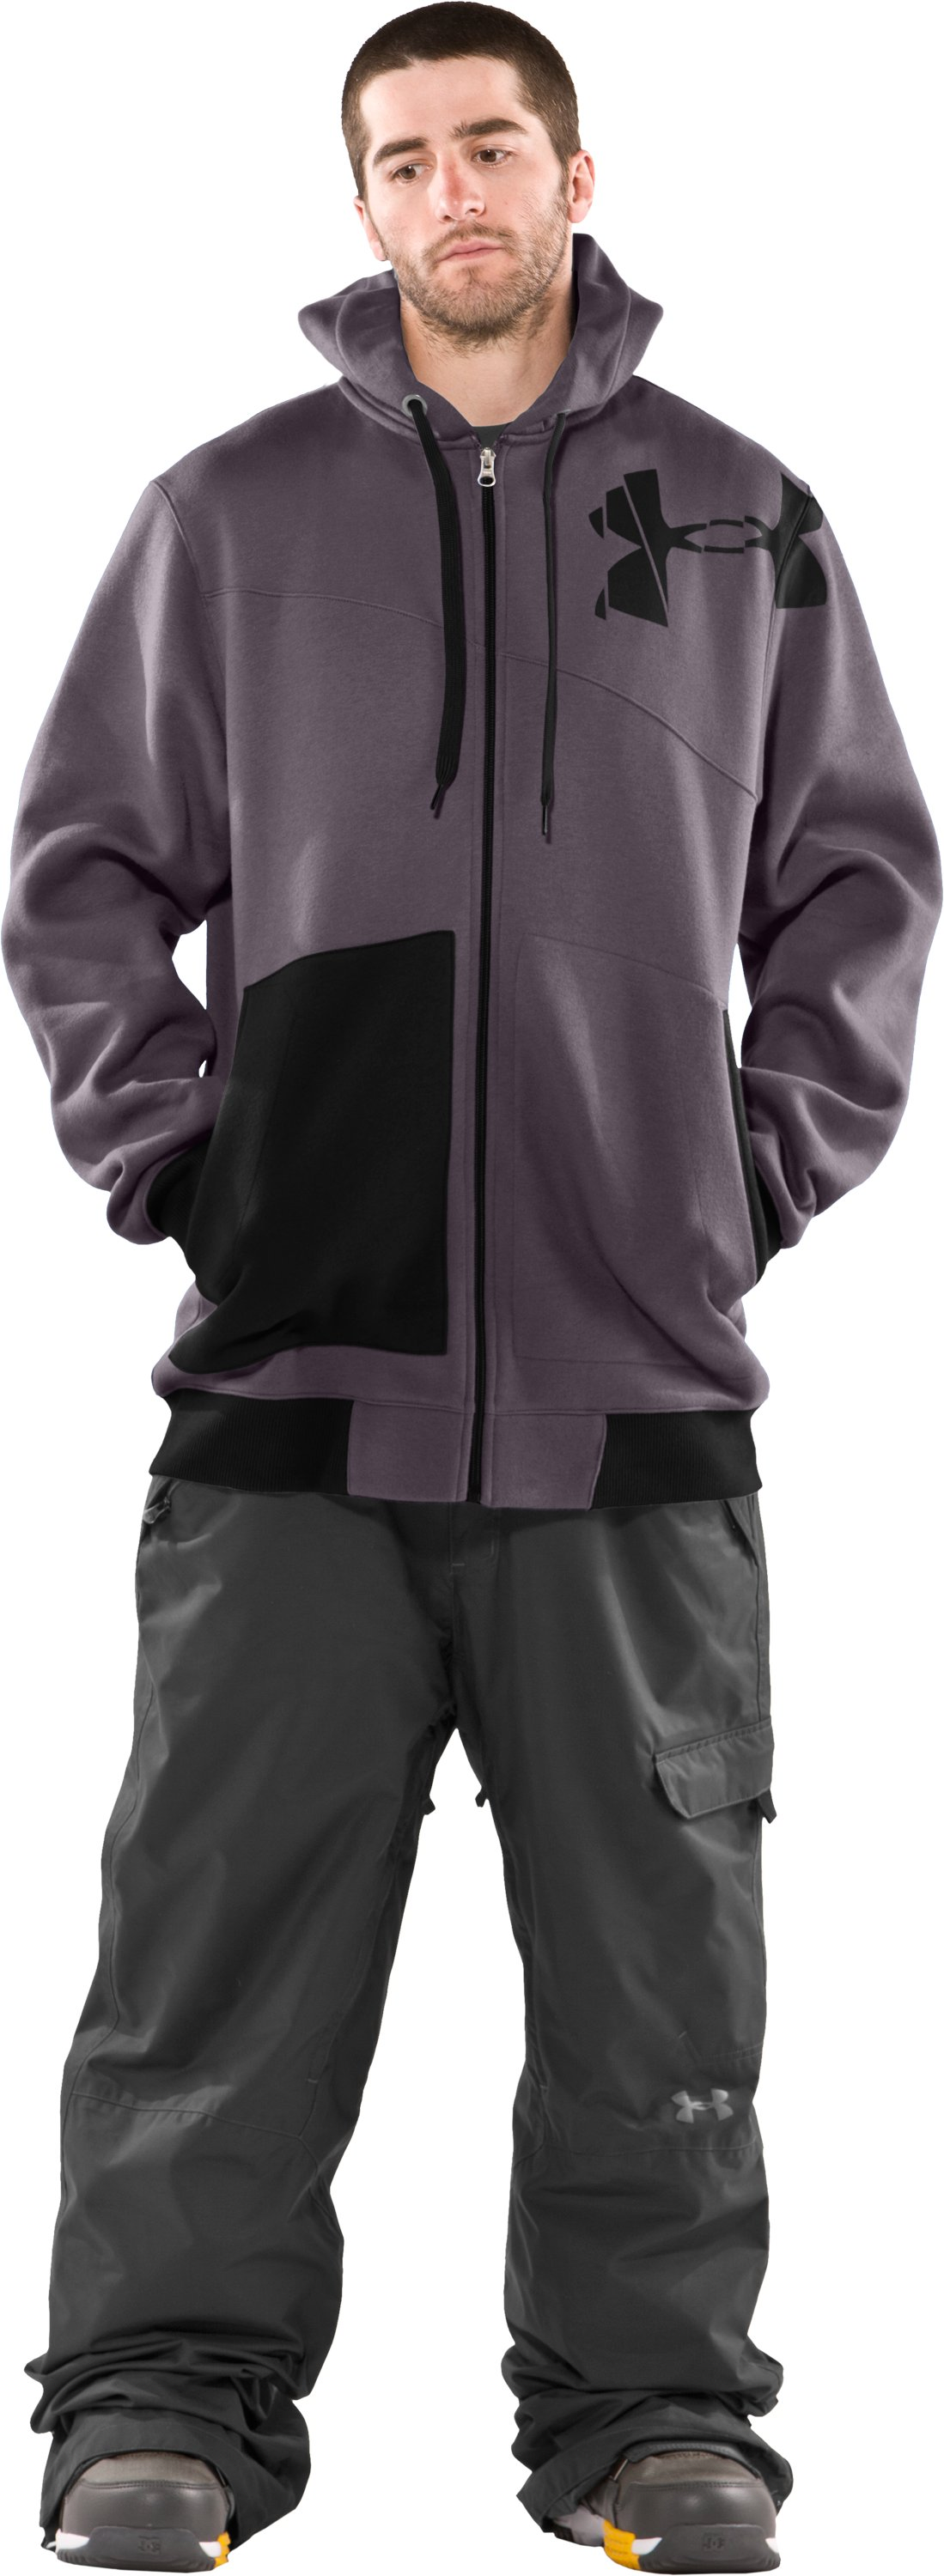 Men's Full Zip Hoodie, Charcoal, Front